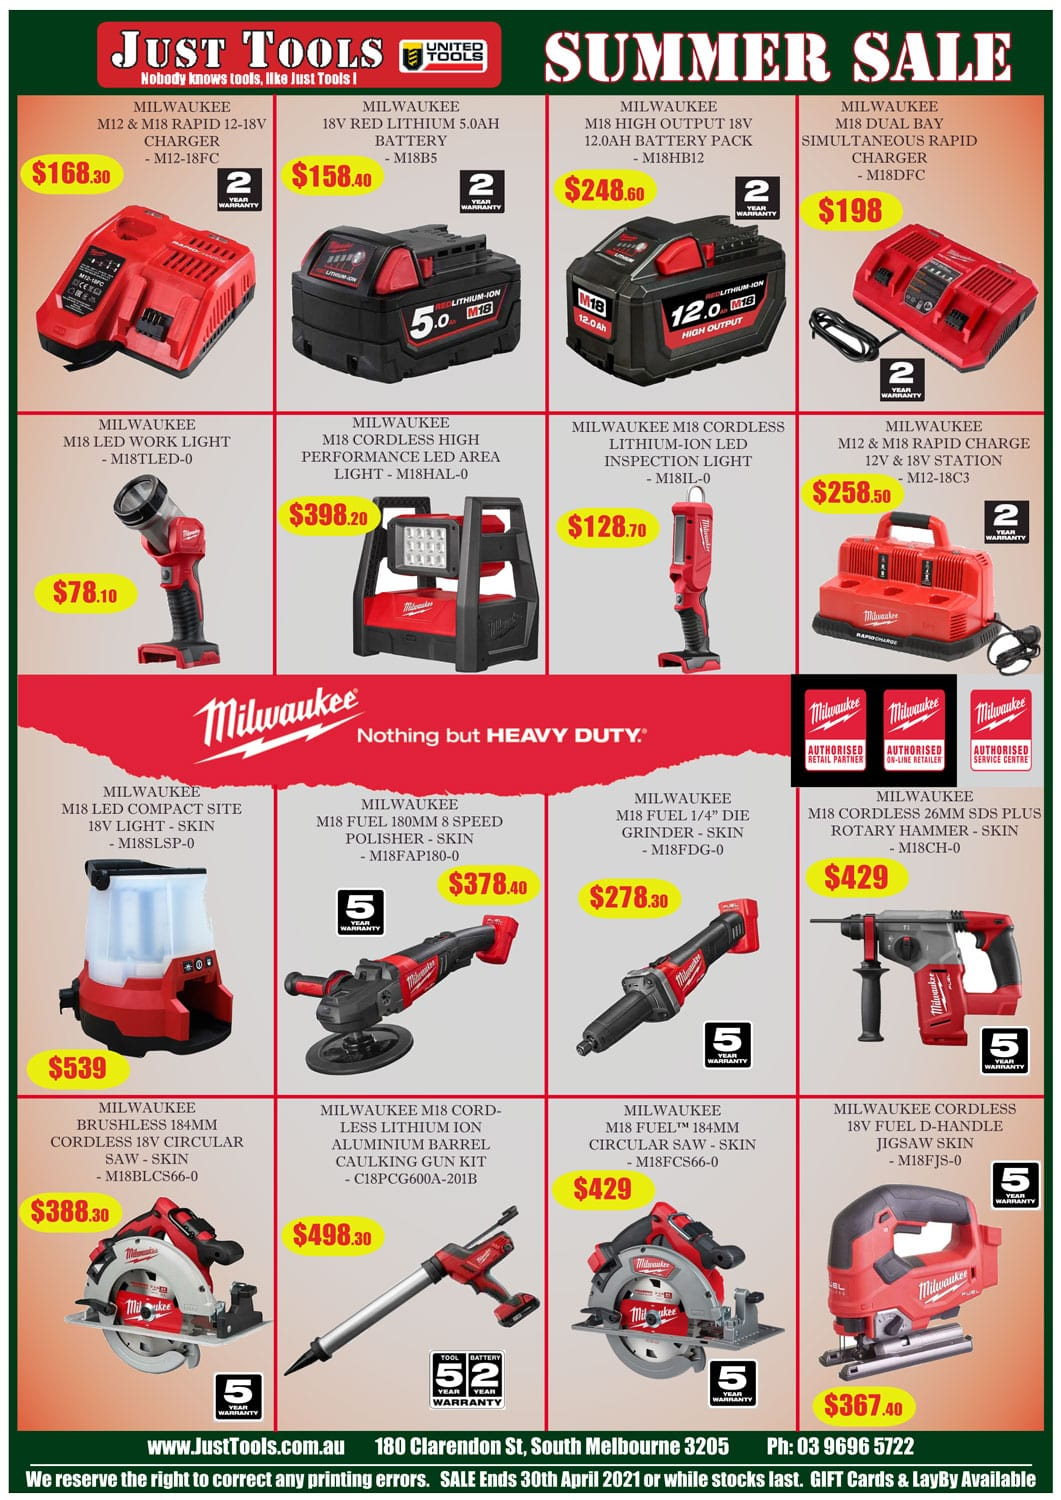 just-tools-summer-sale-page-8c-min.jpg